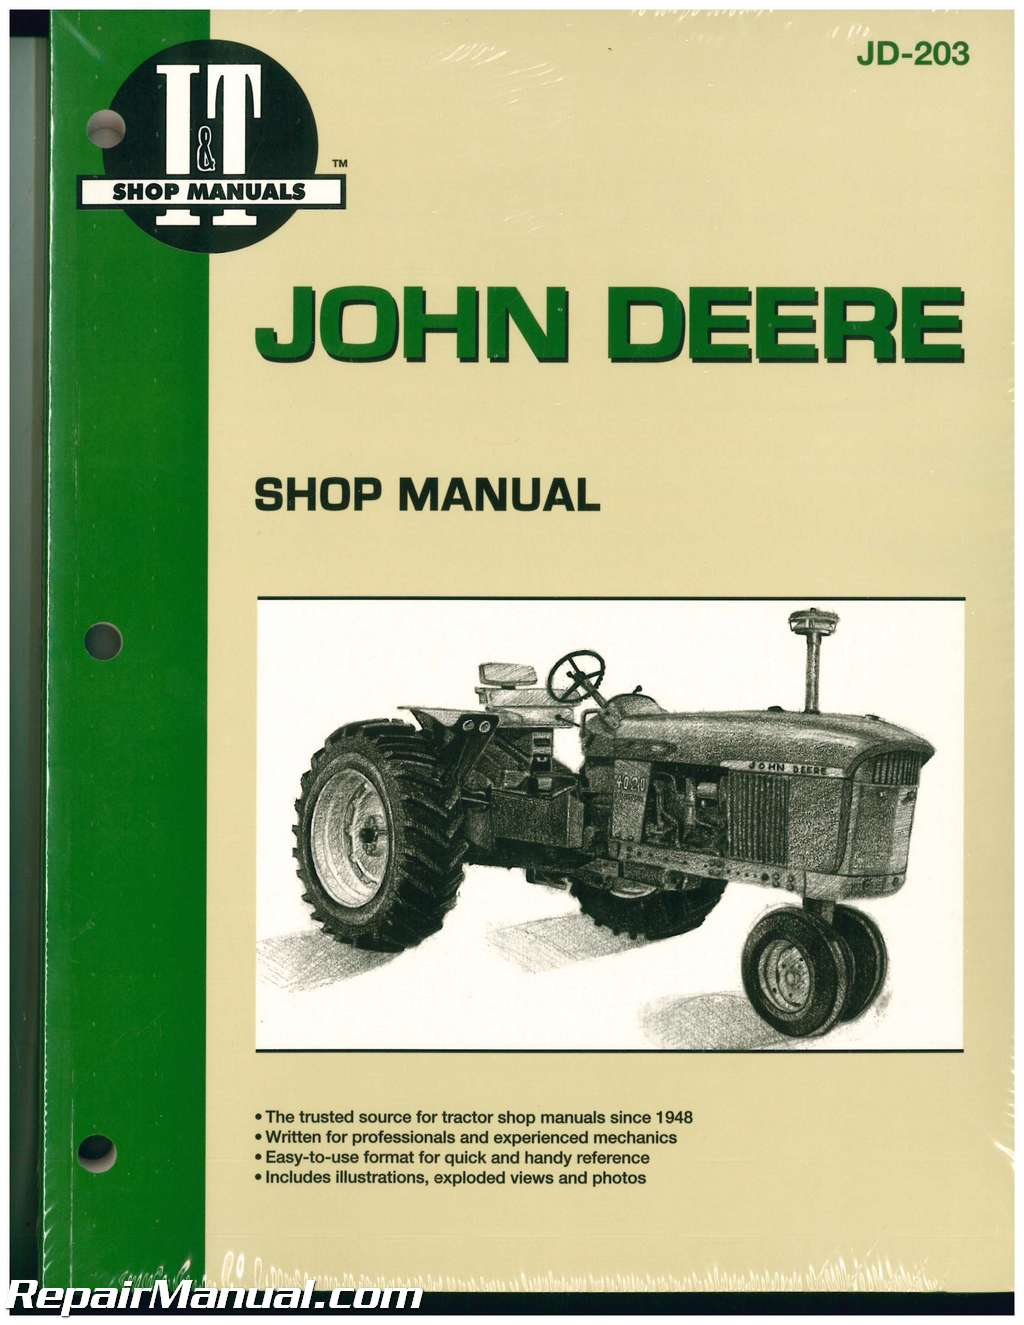 Wiring Diagram John Deere 4020 Powershift List Of Schematic Jd 2520 3010 3020 4000 4010 4320 4520 4620 5010 5020 And Rh Repairmanual Com